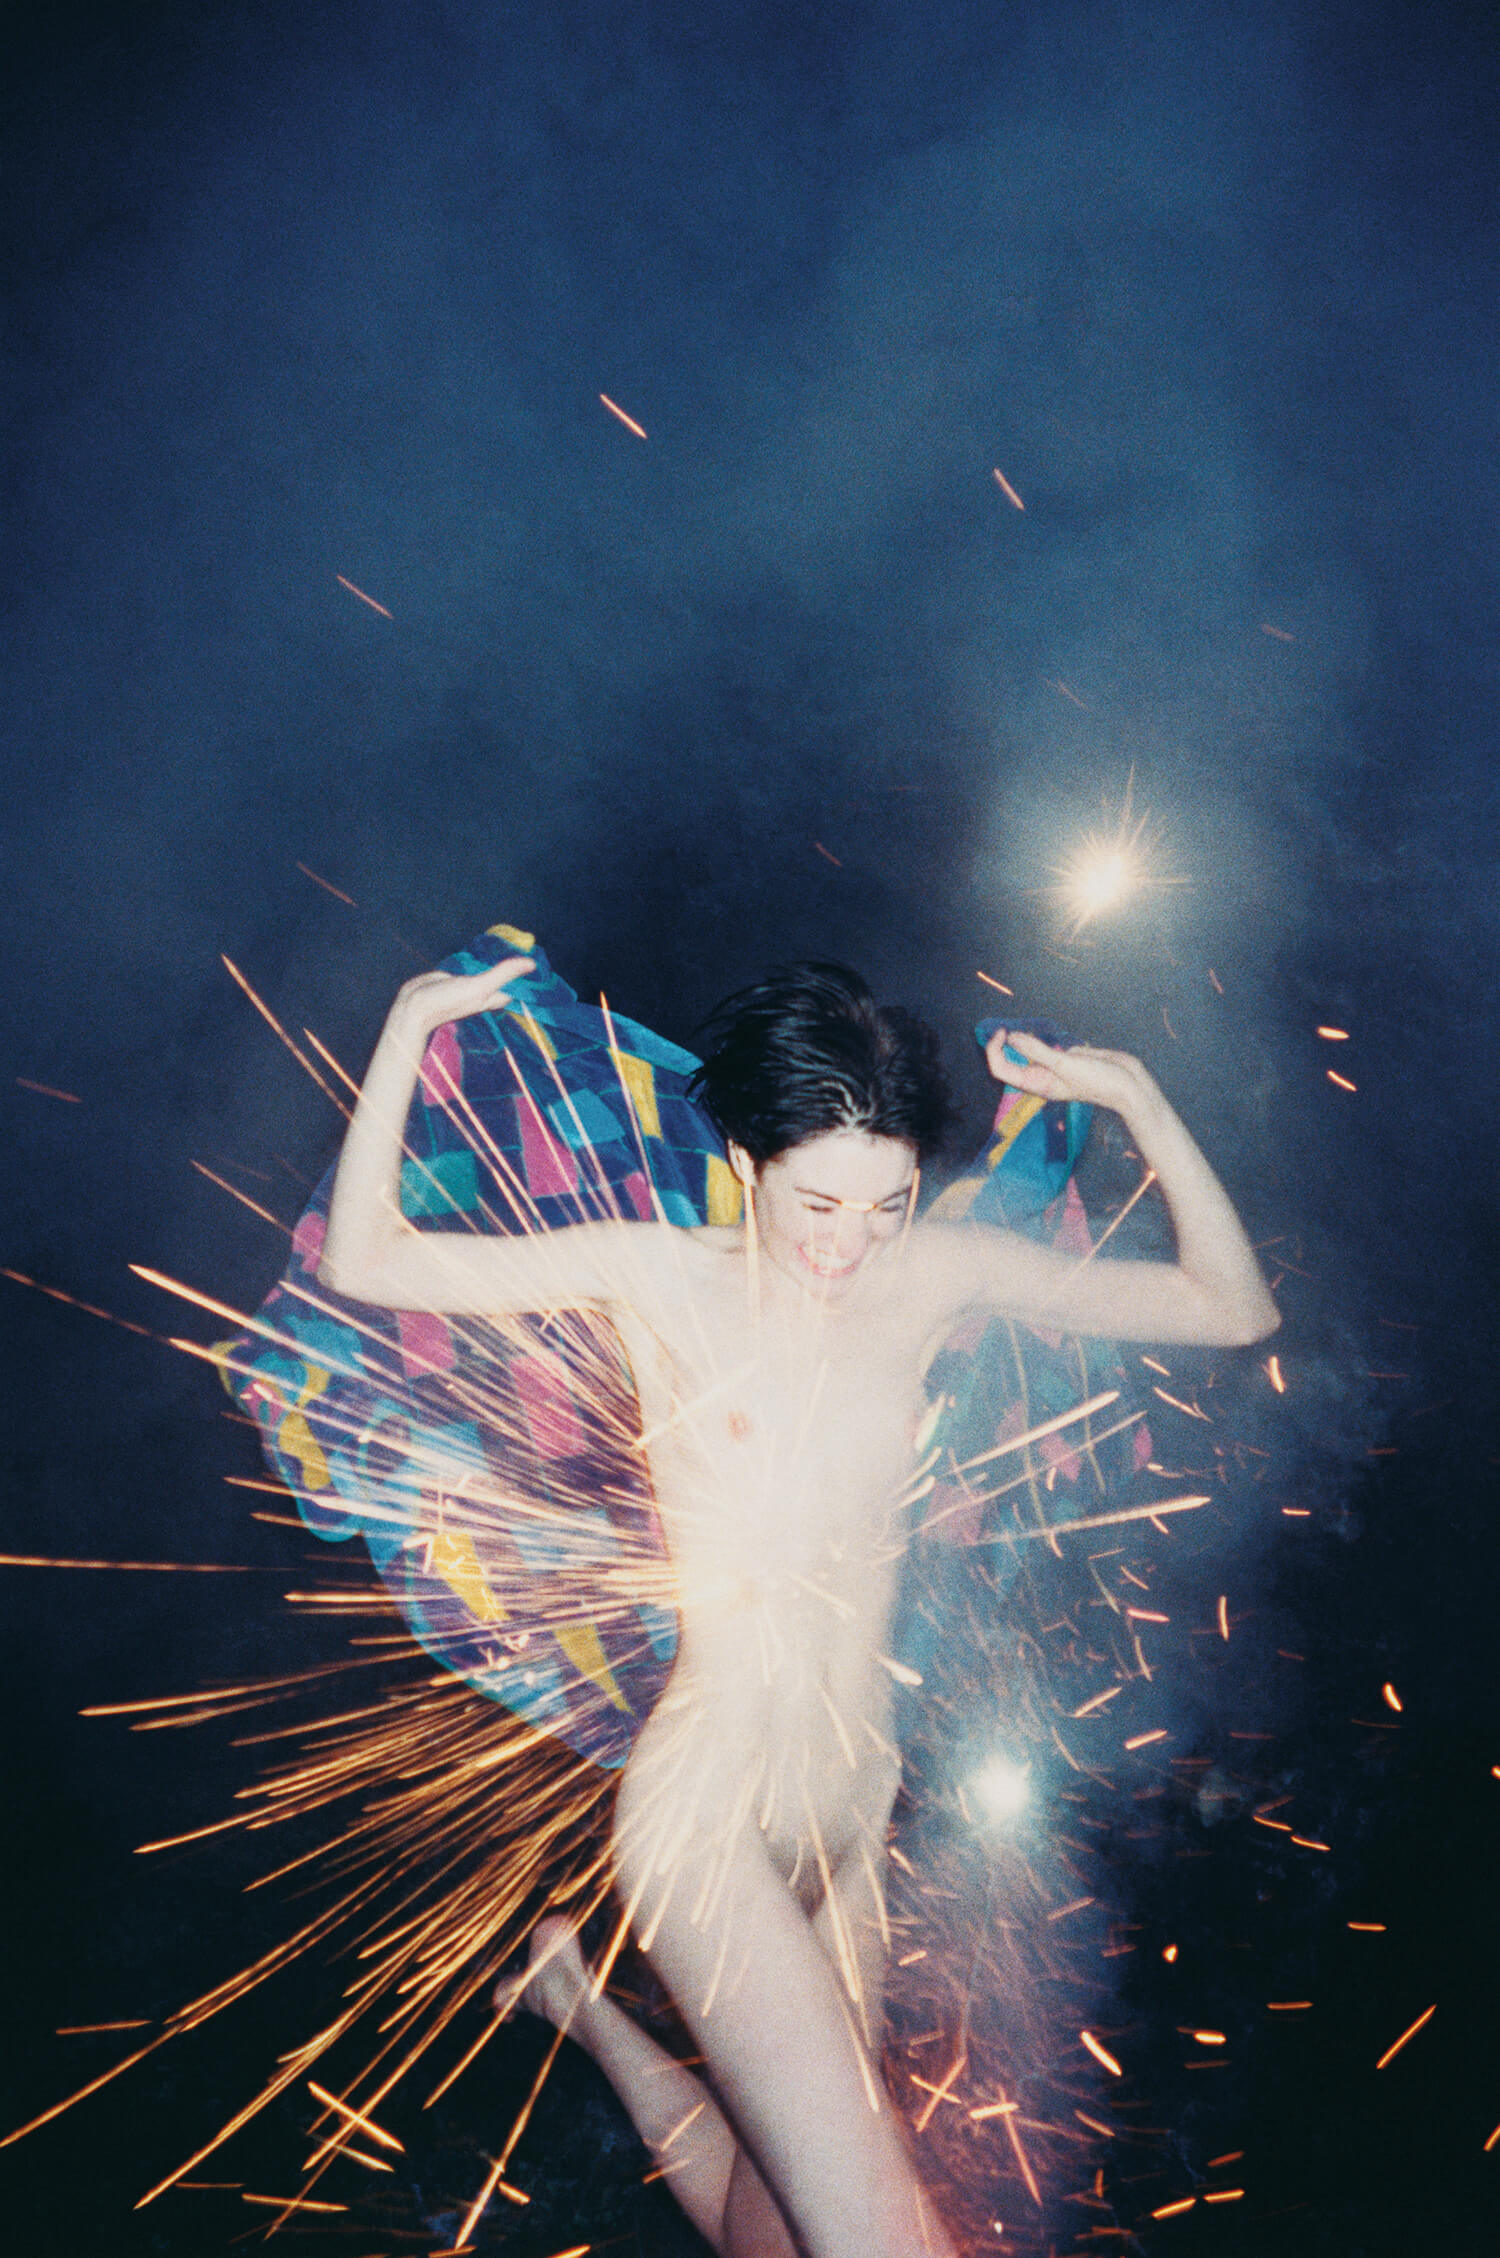 Fireworks, 2002. C-print, 40 x 30 inches. © Ryan McGinley.